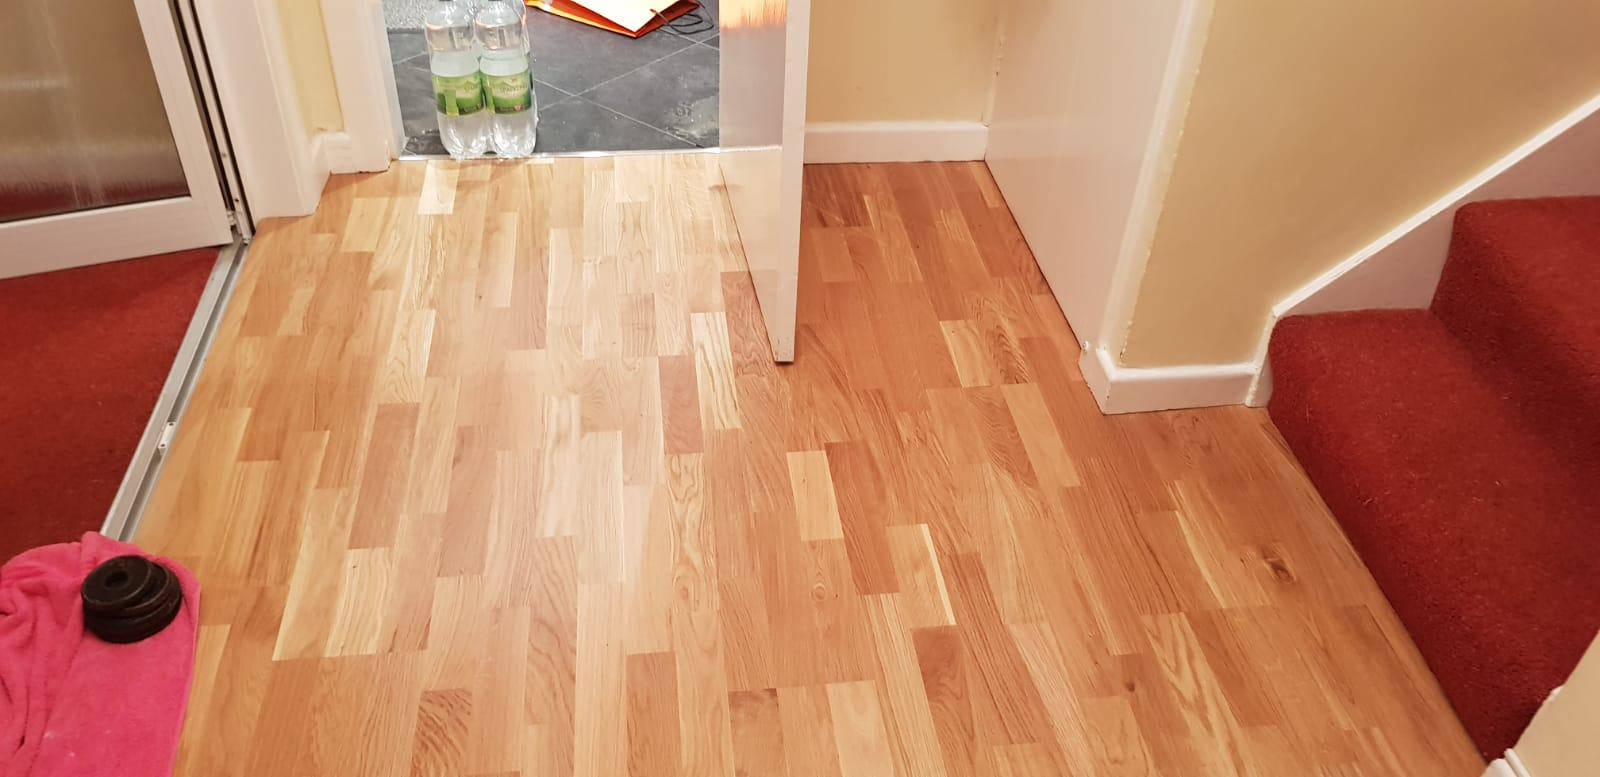 3-Strip Wood Flooring In Wandsworth 2